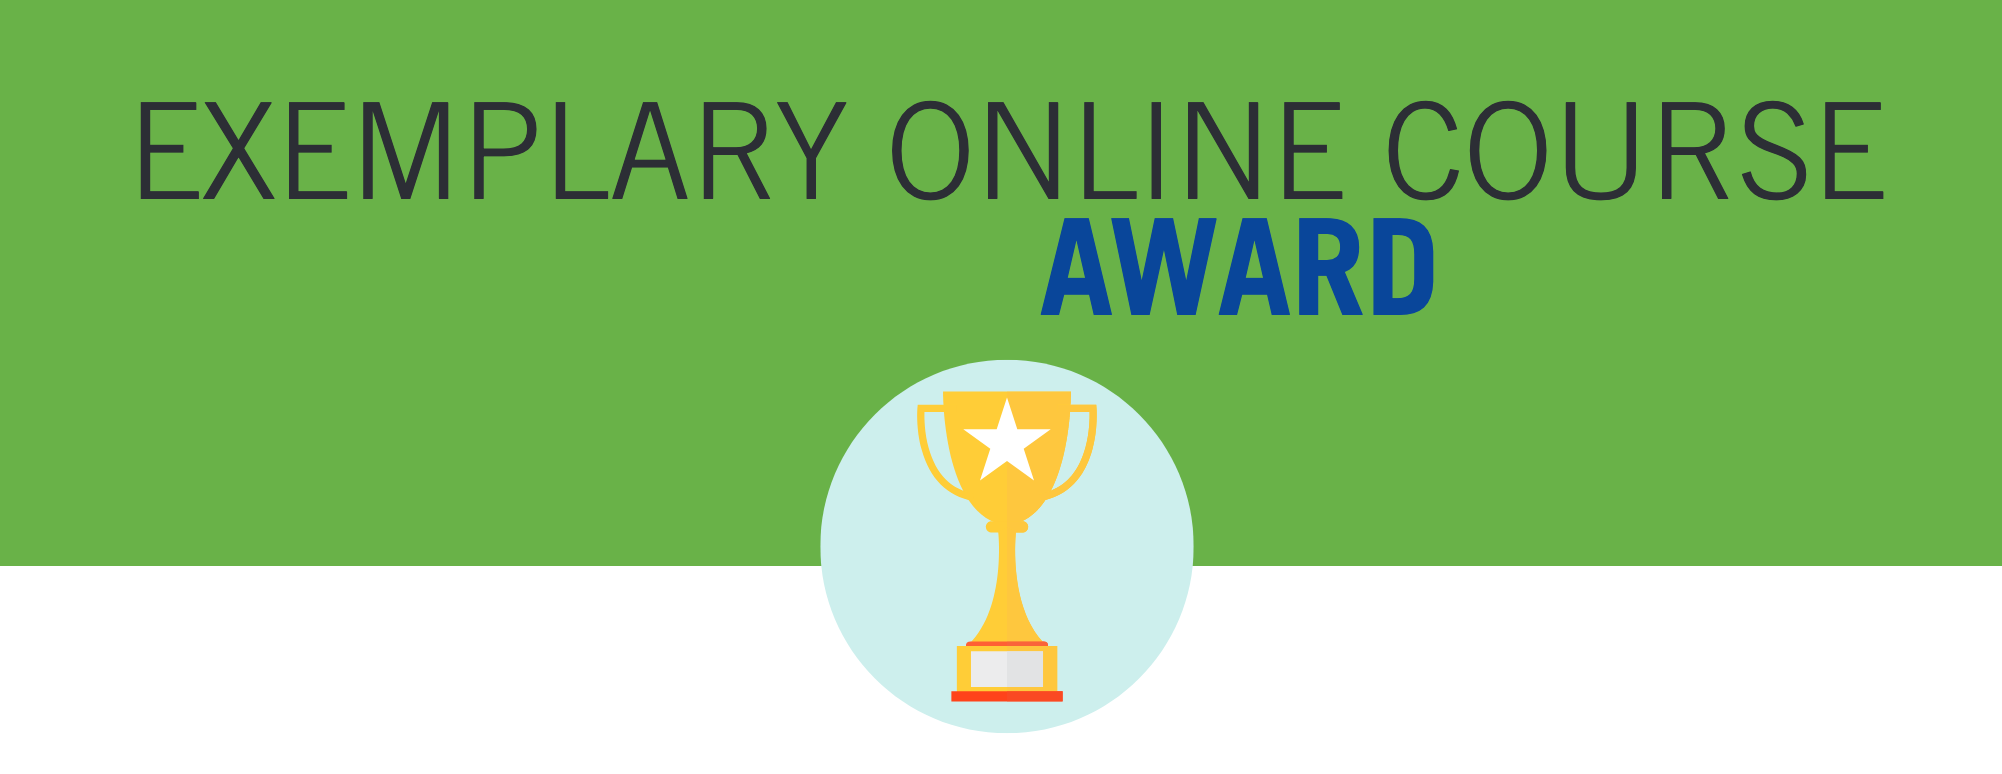 exemplary online course award